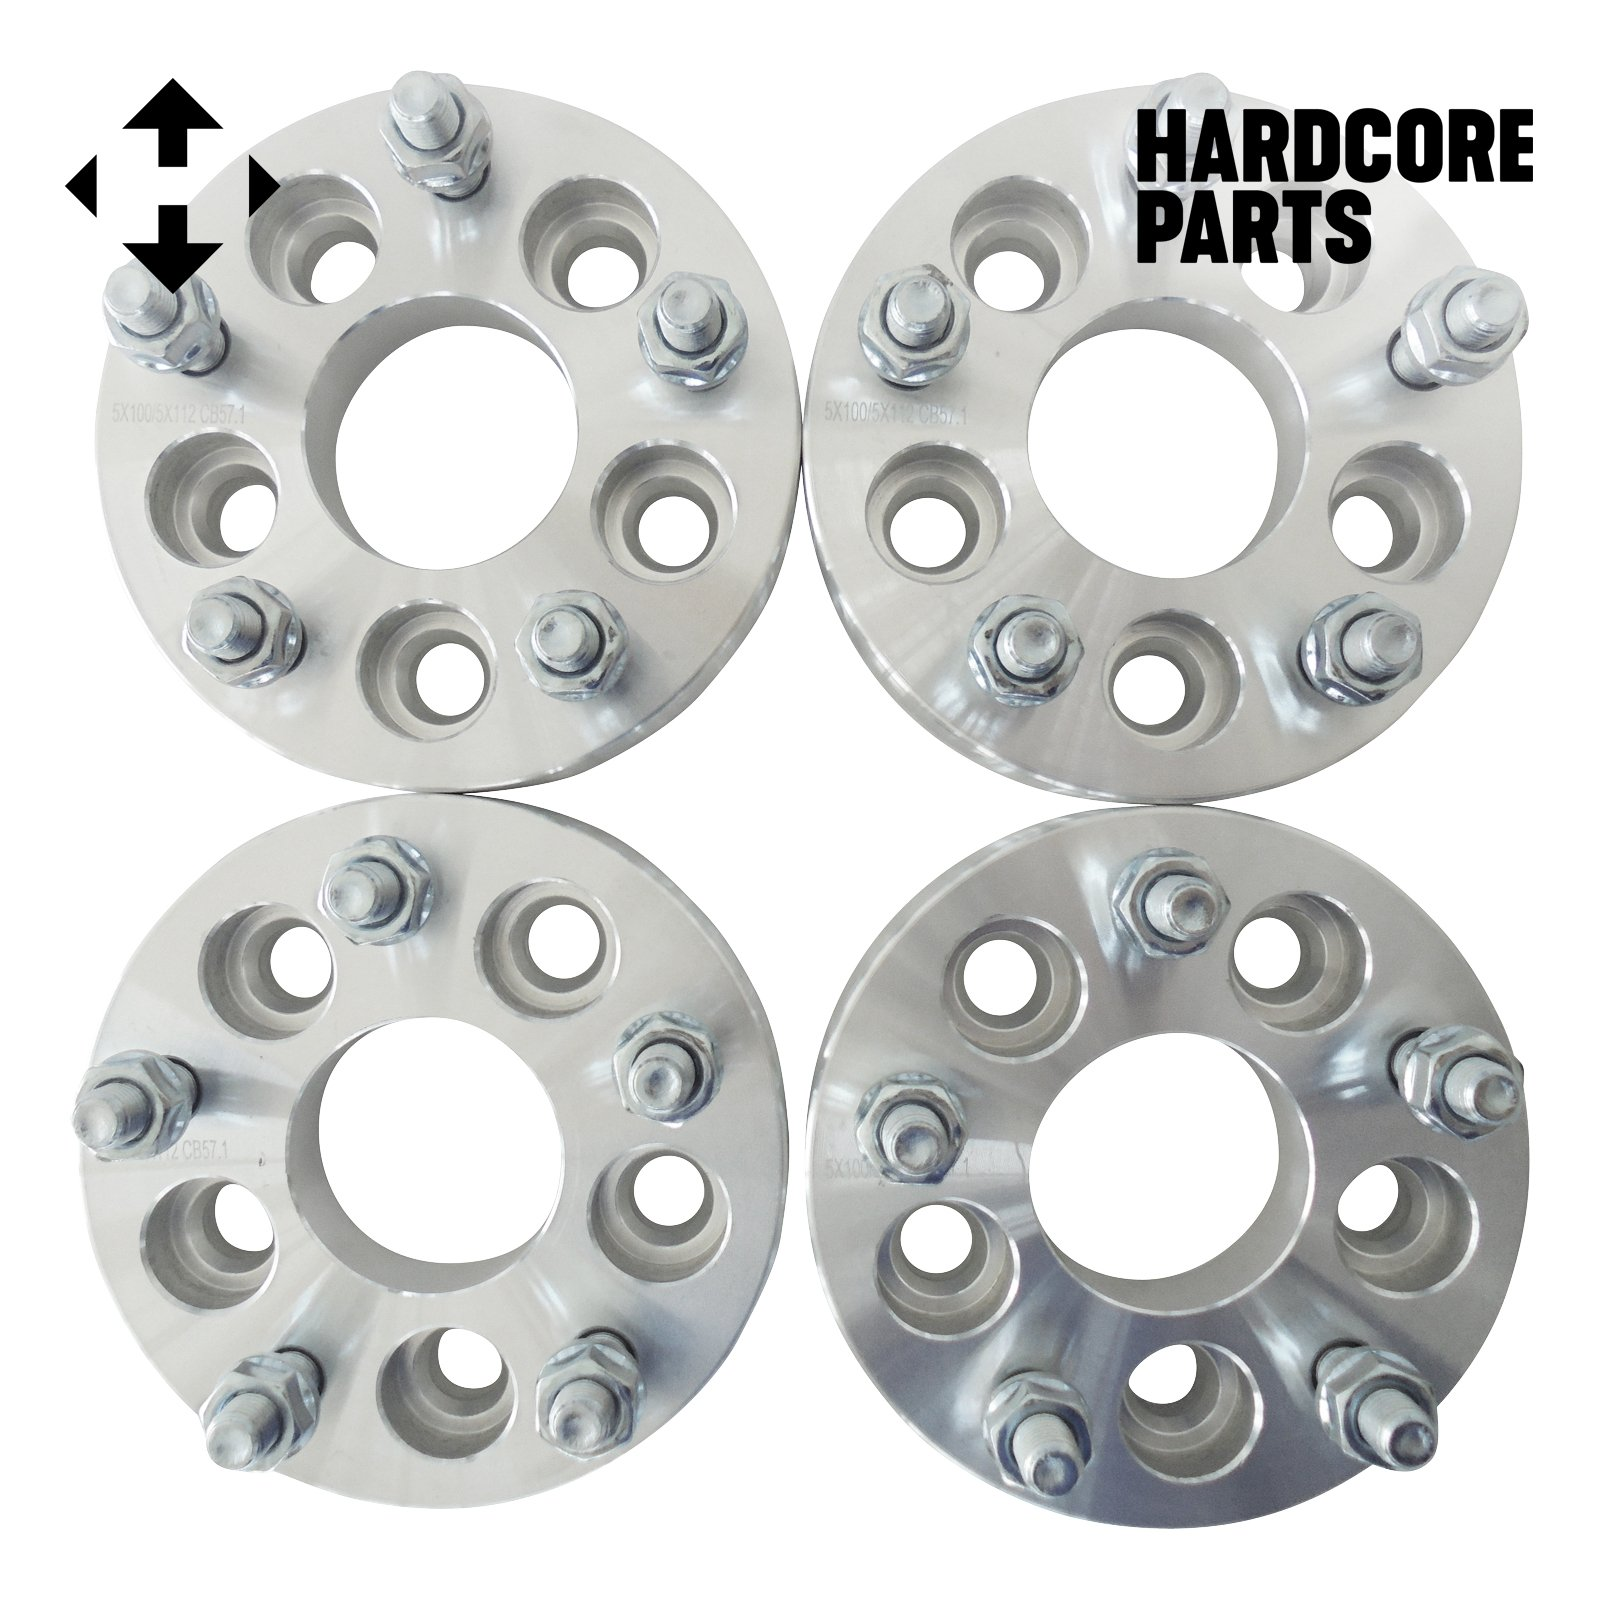 (4pc) 2'' (1'' per side) 5X100 to 5x112 Wheel Spacers Adapters M12x1.5 studs - SmartPartsCo